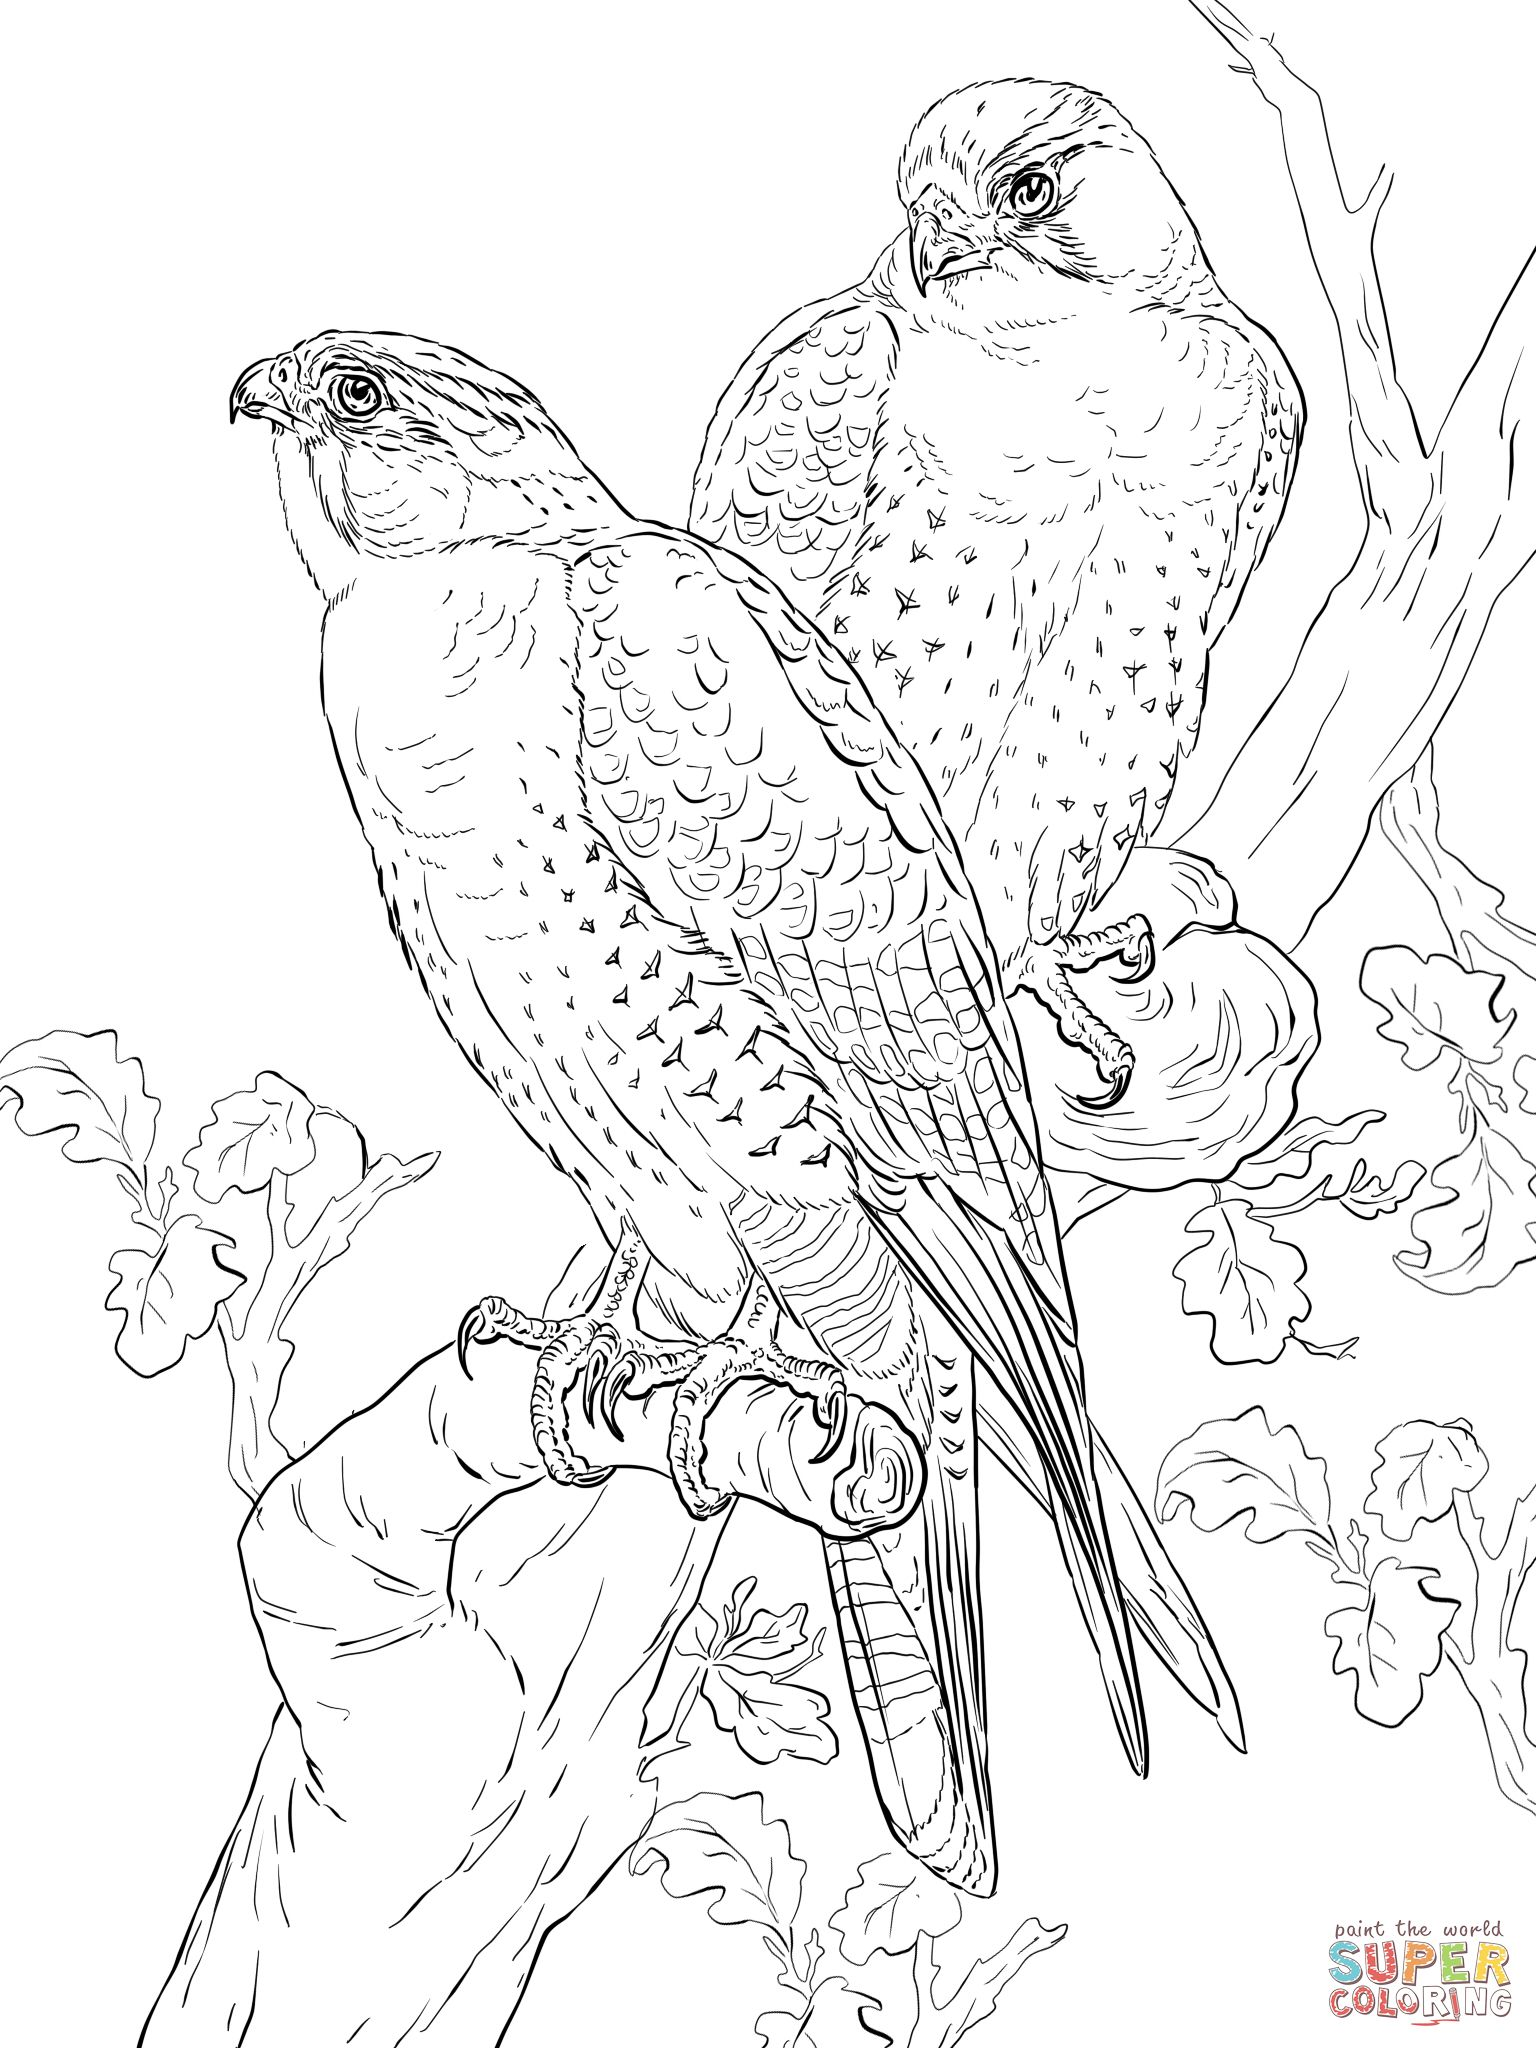 birds of prey coloring pages birds of prey coloring pages hakume colors birds of coloring prey pages